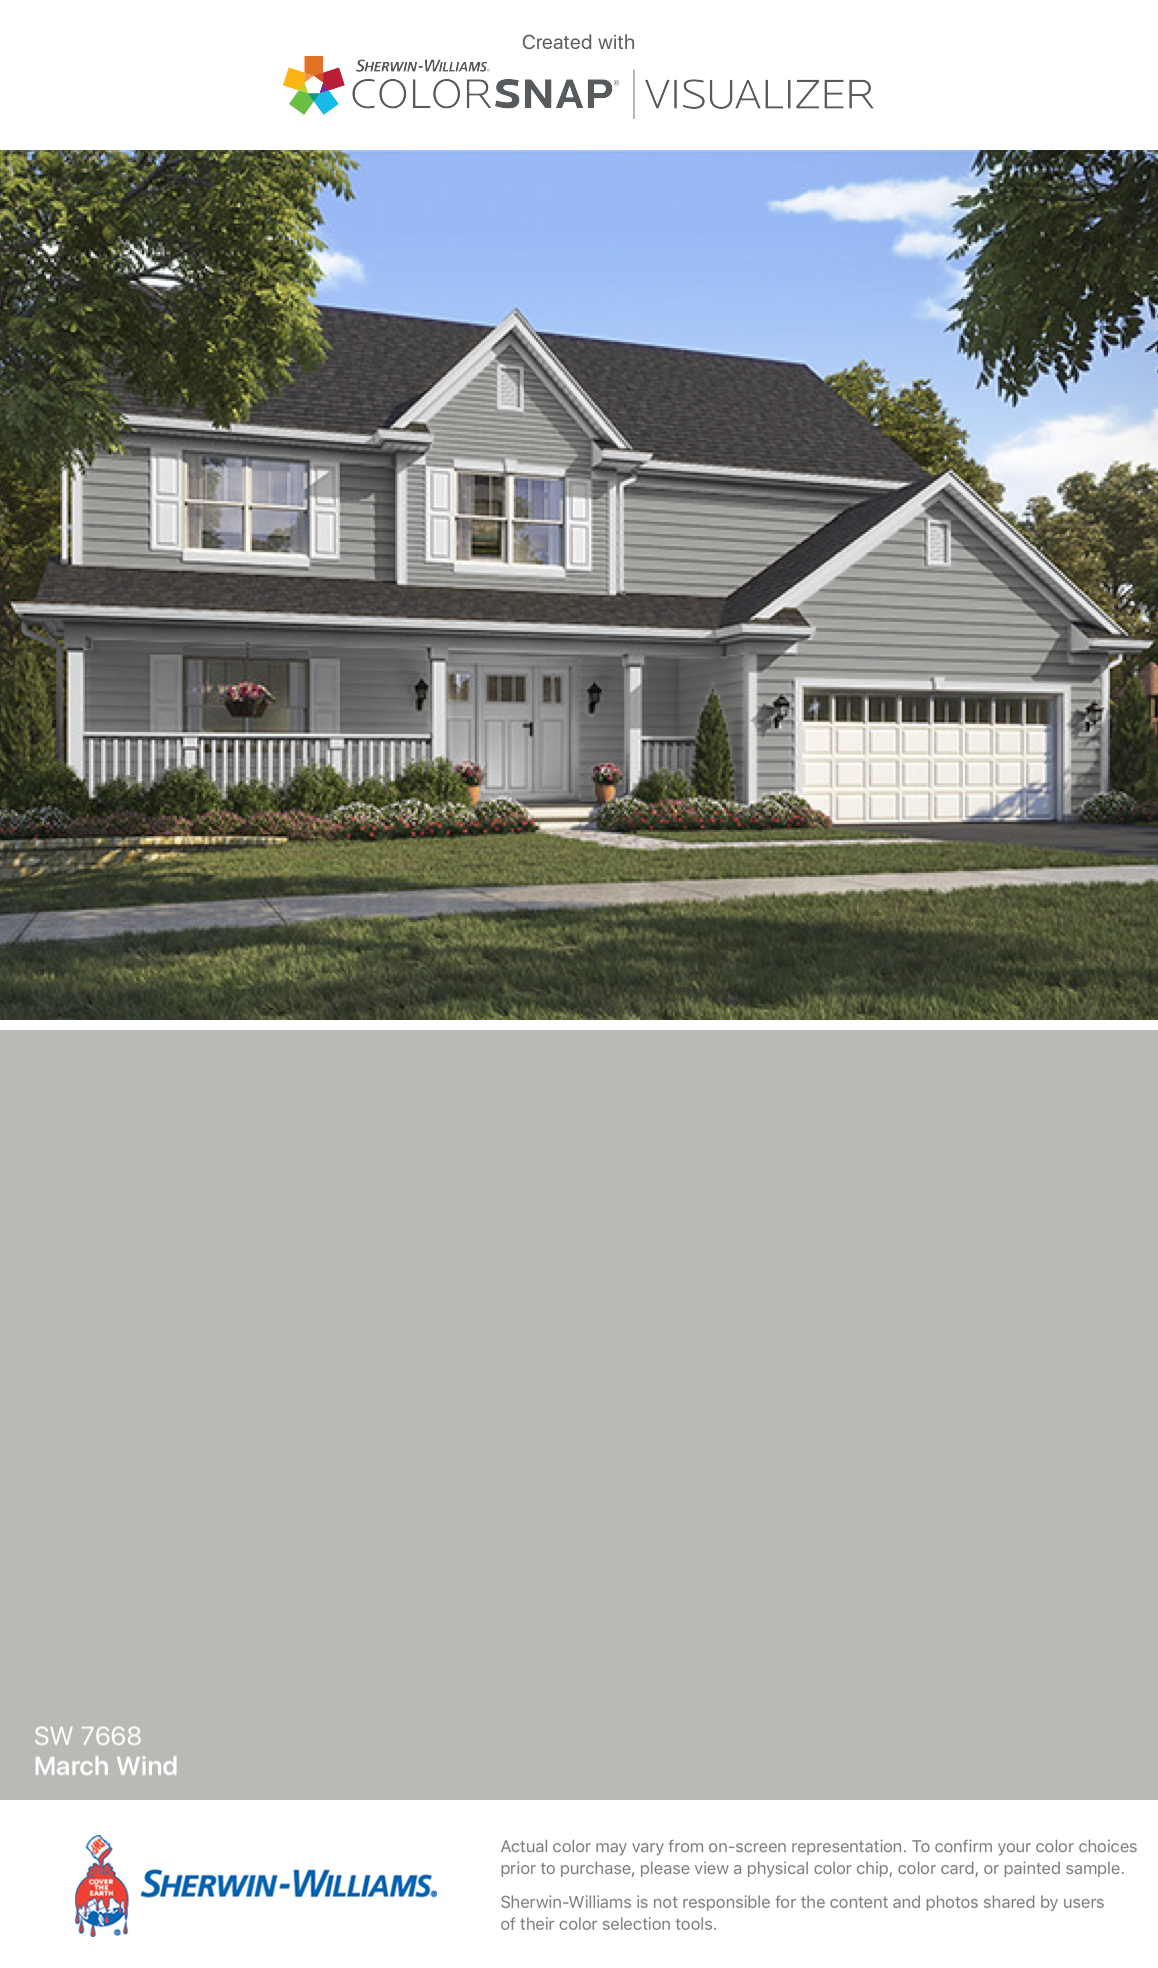 I found this color with colorsnap visualizer for iphone Sherwin williams march wind exterior